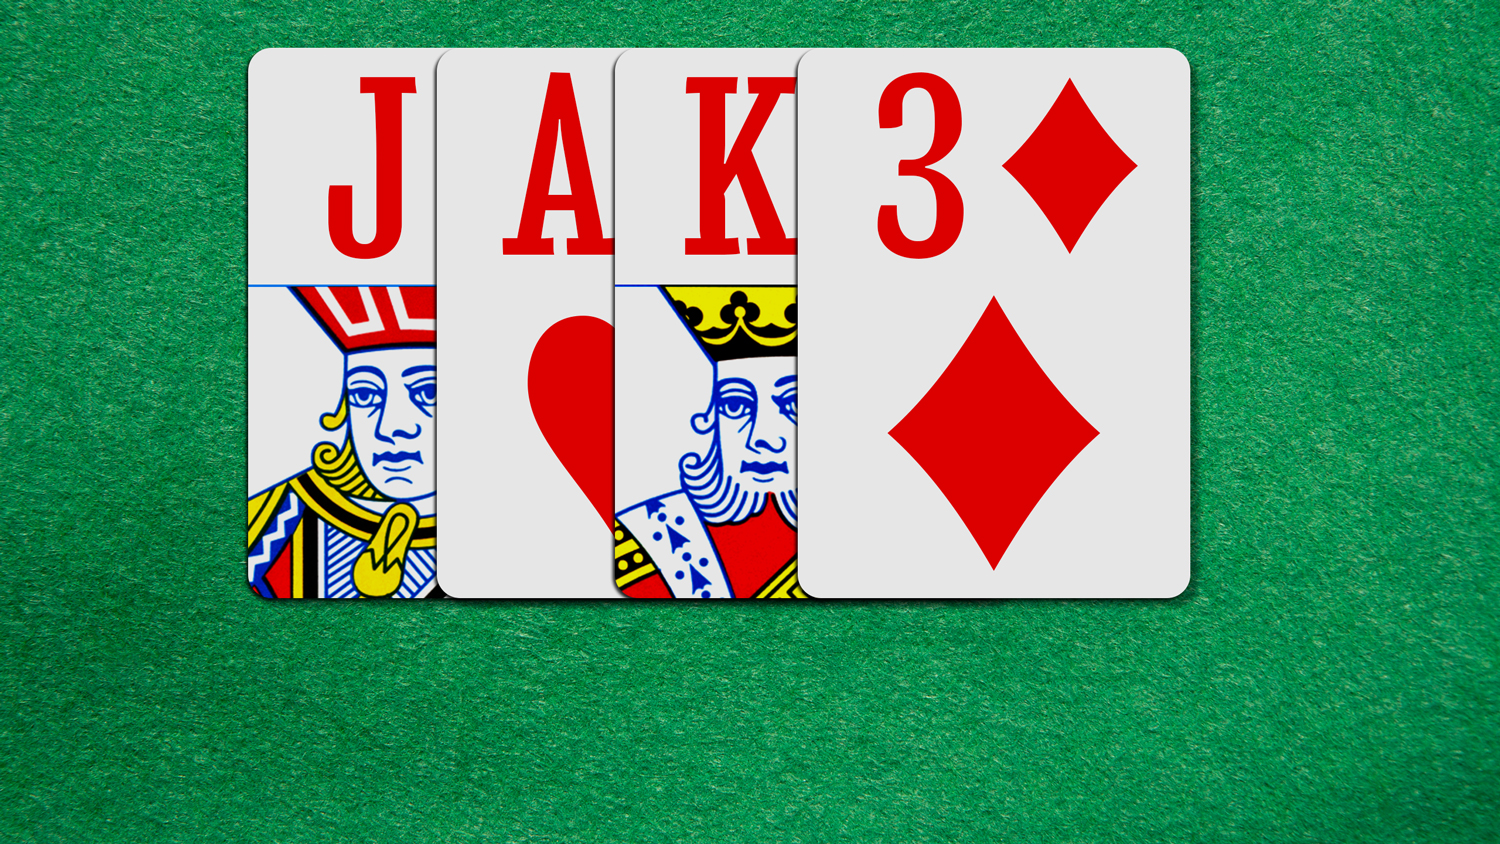 The name Jake spelled with four playing cards on a green background.